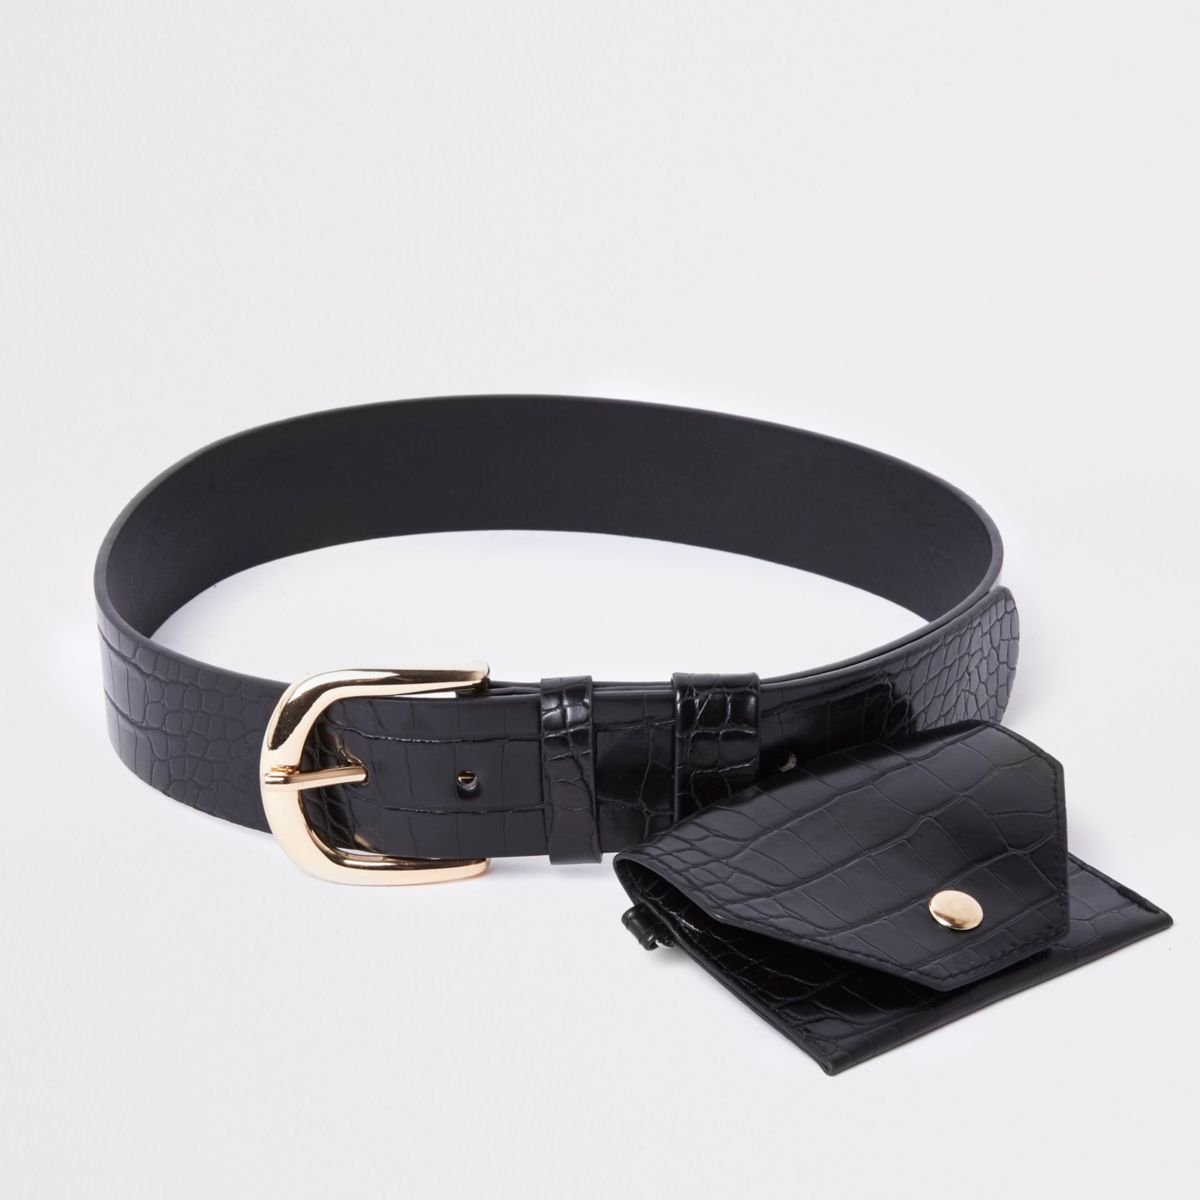 Black croc purse waist belt